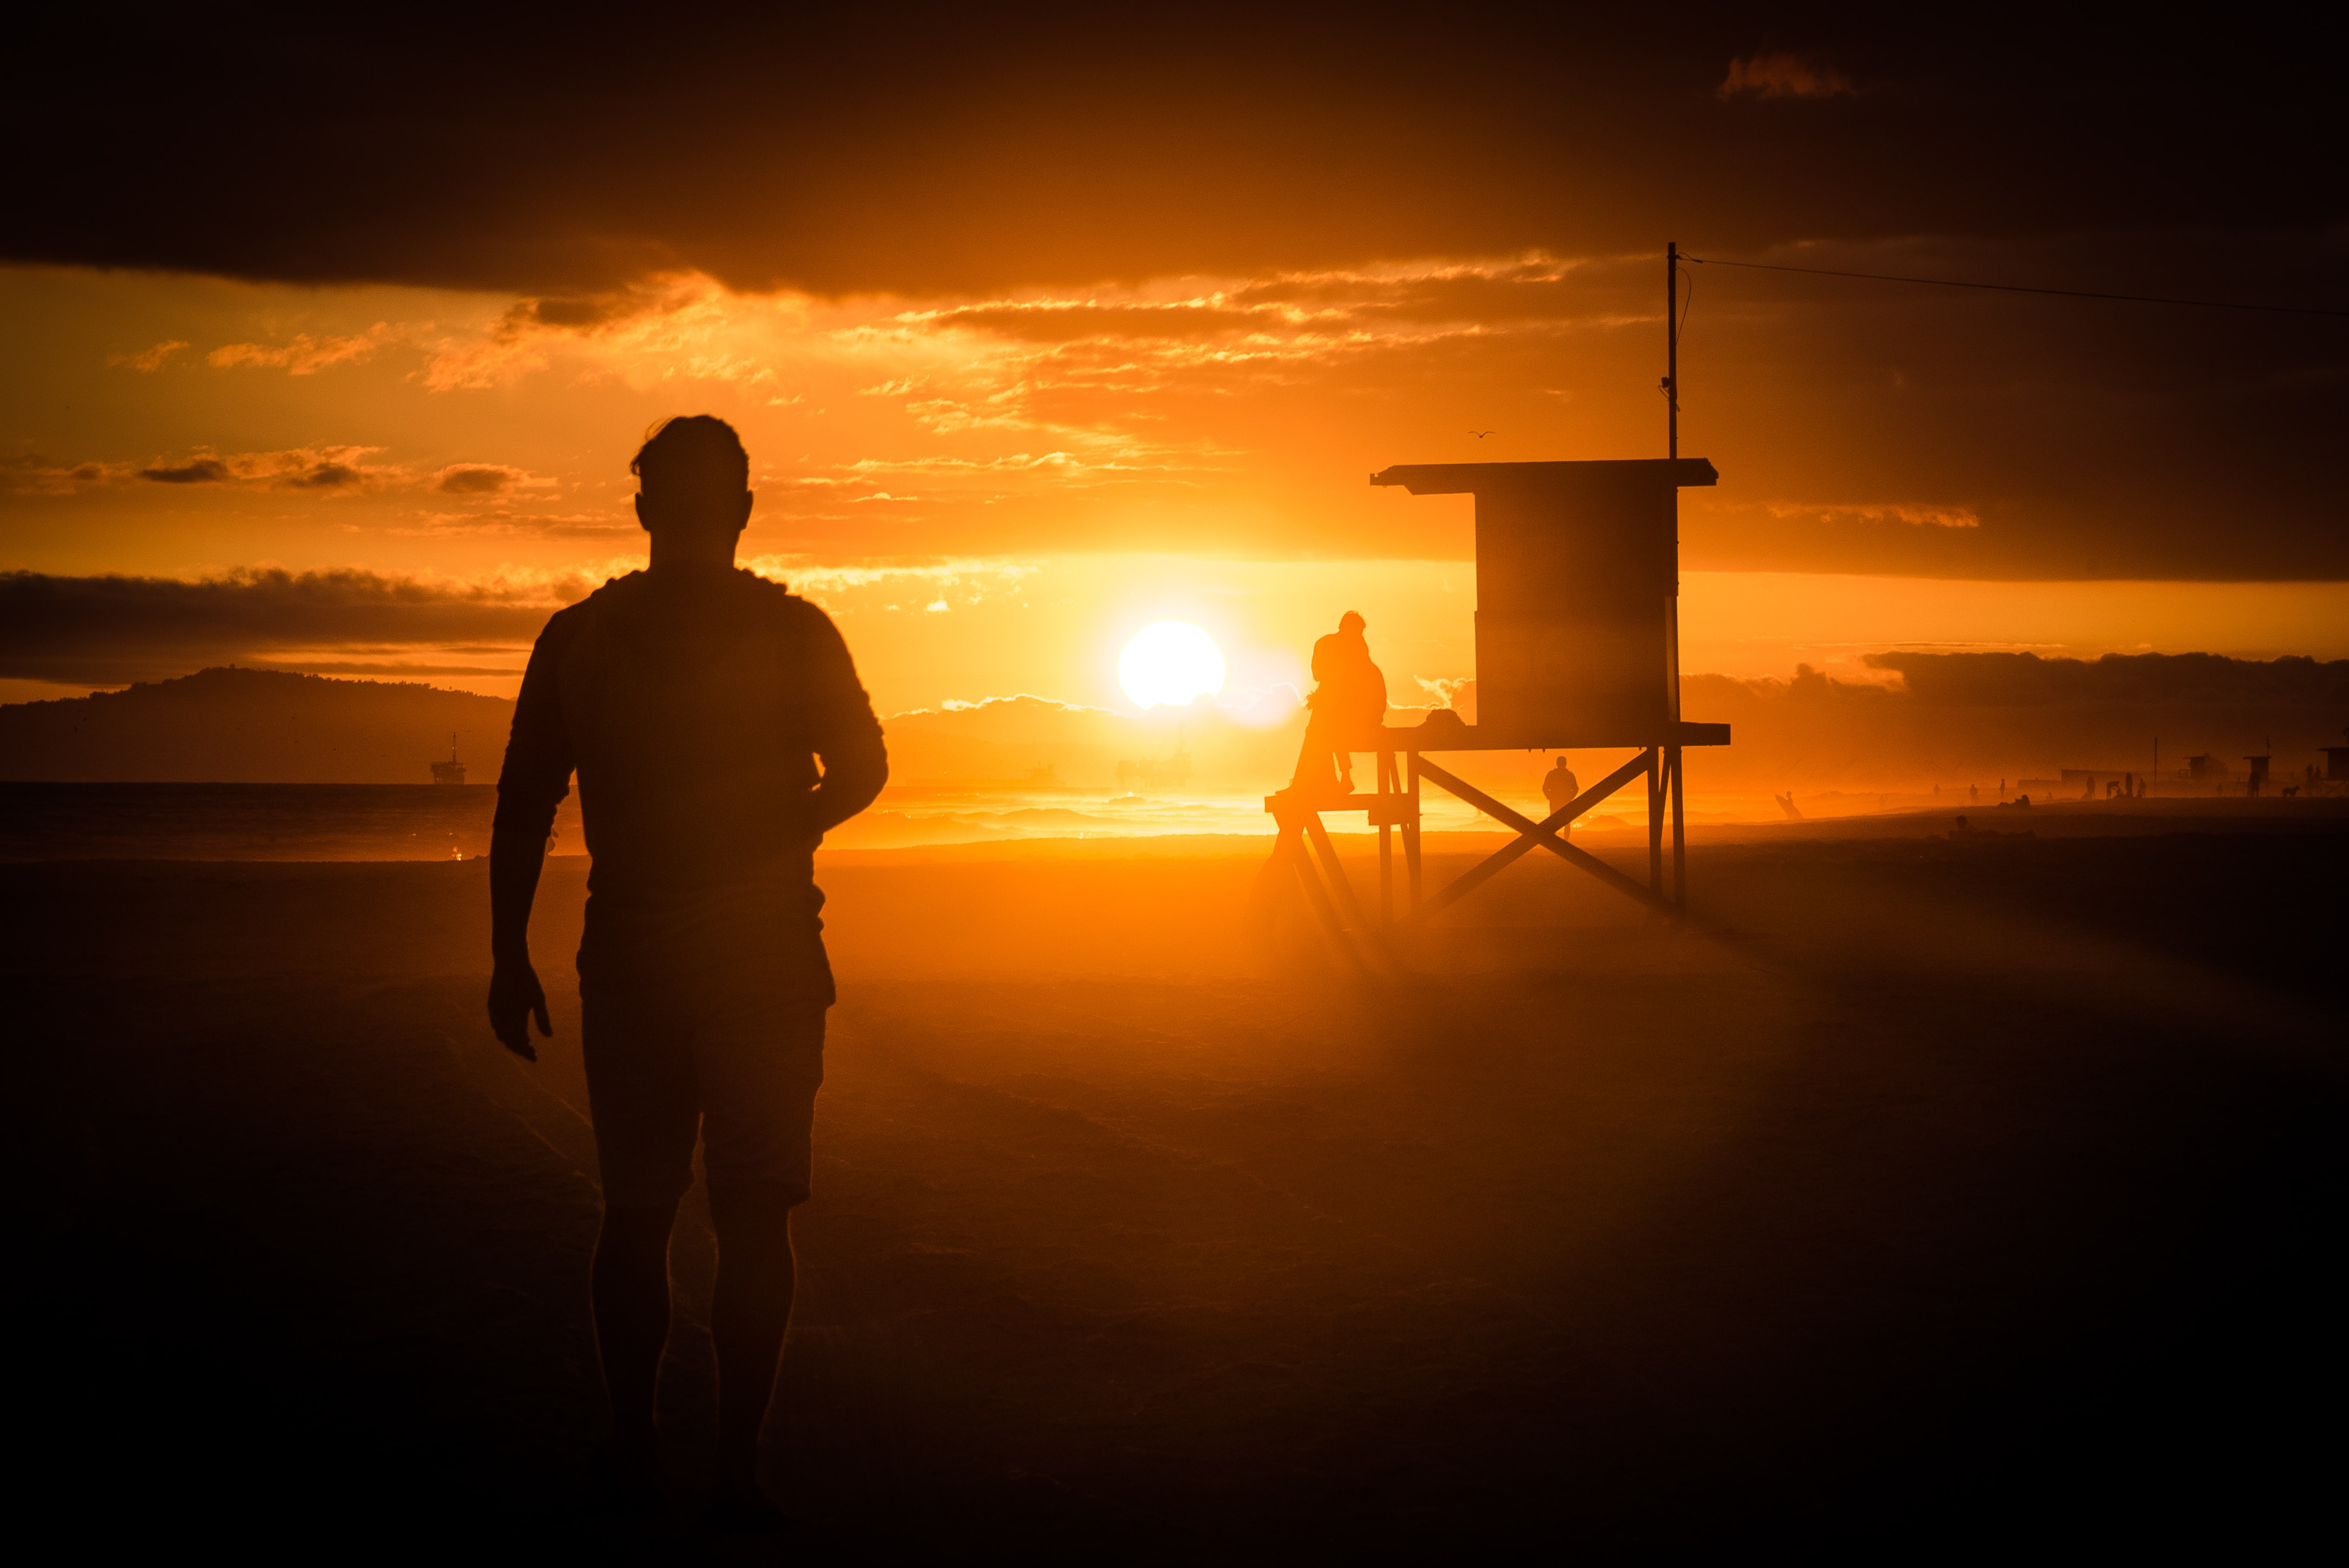 A man walks on Newport Beach with a low sunset casting the lifeguard hut into silhouette.